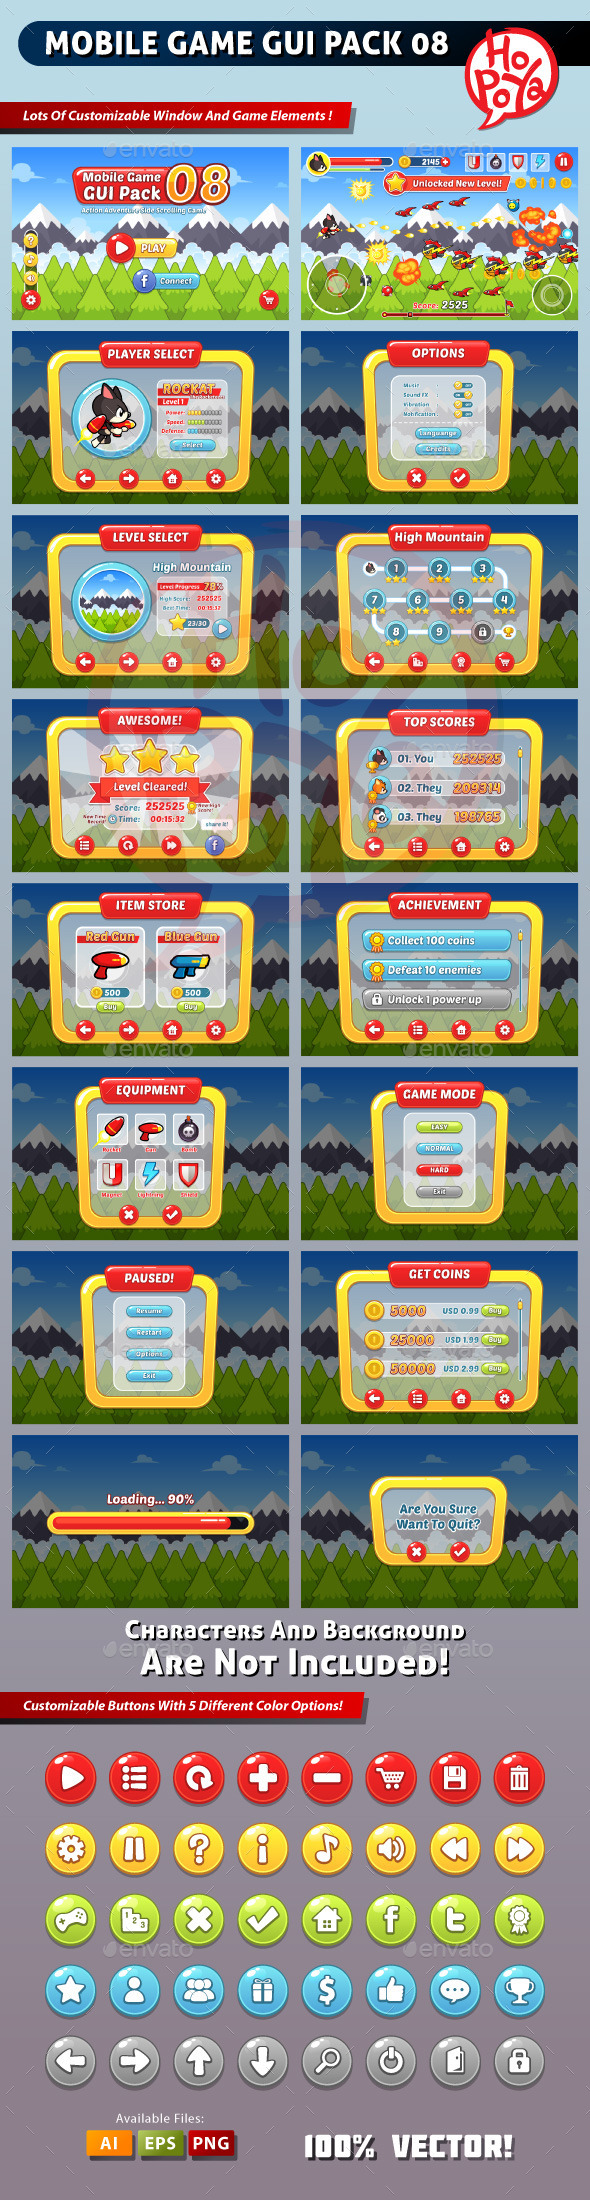 Mobile Game GUI Pack 08 - User Interfaces Game Assets